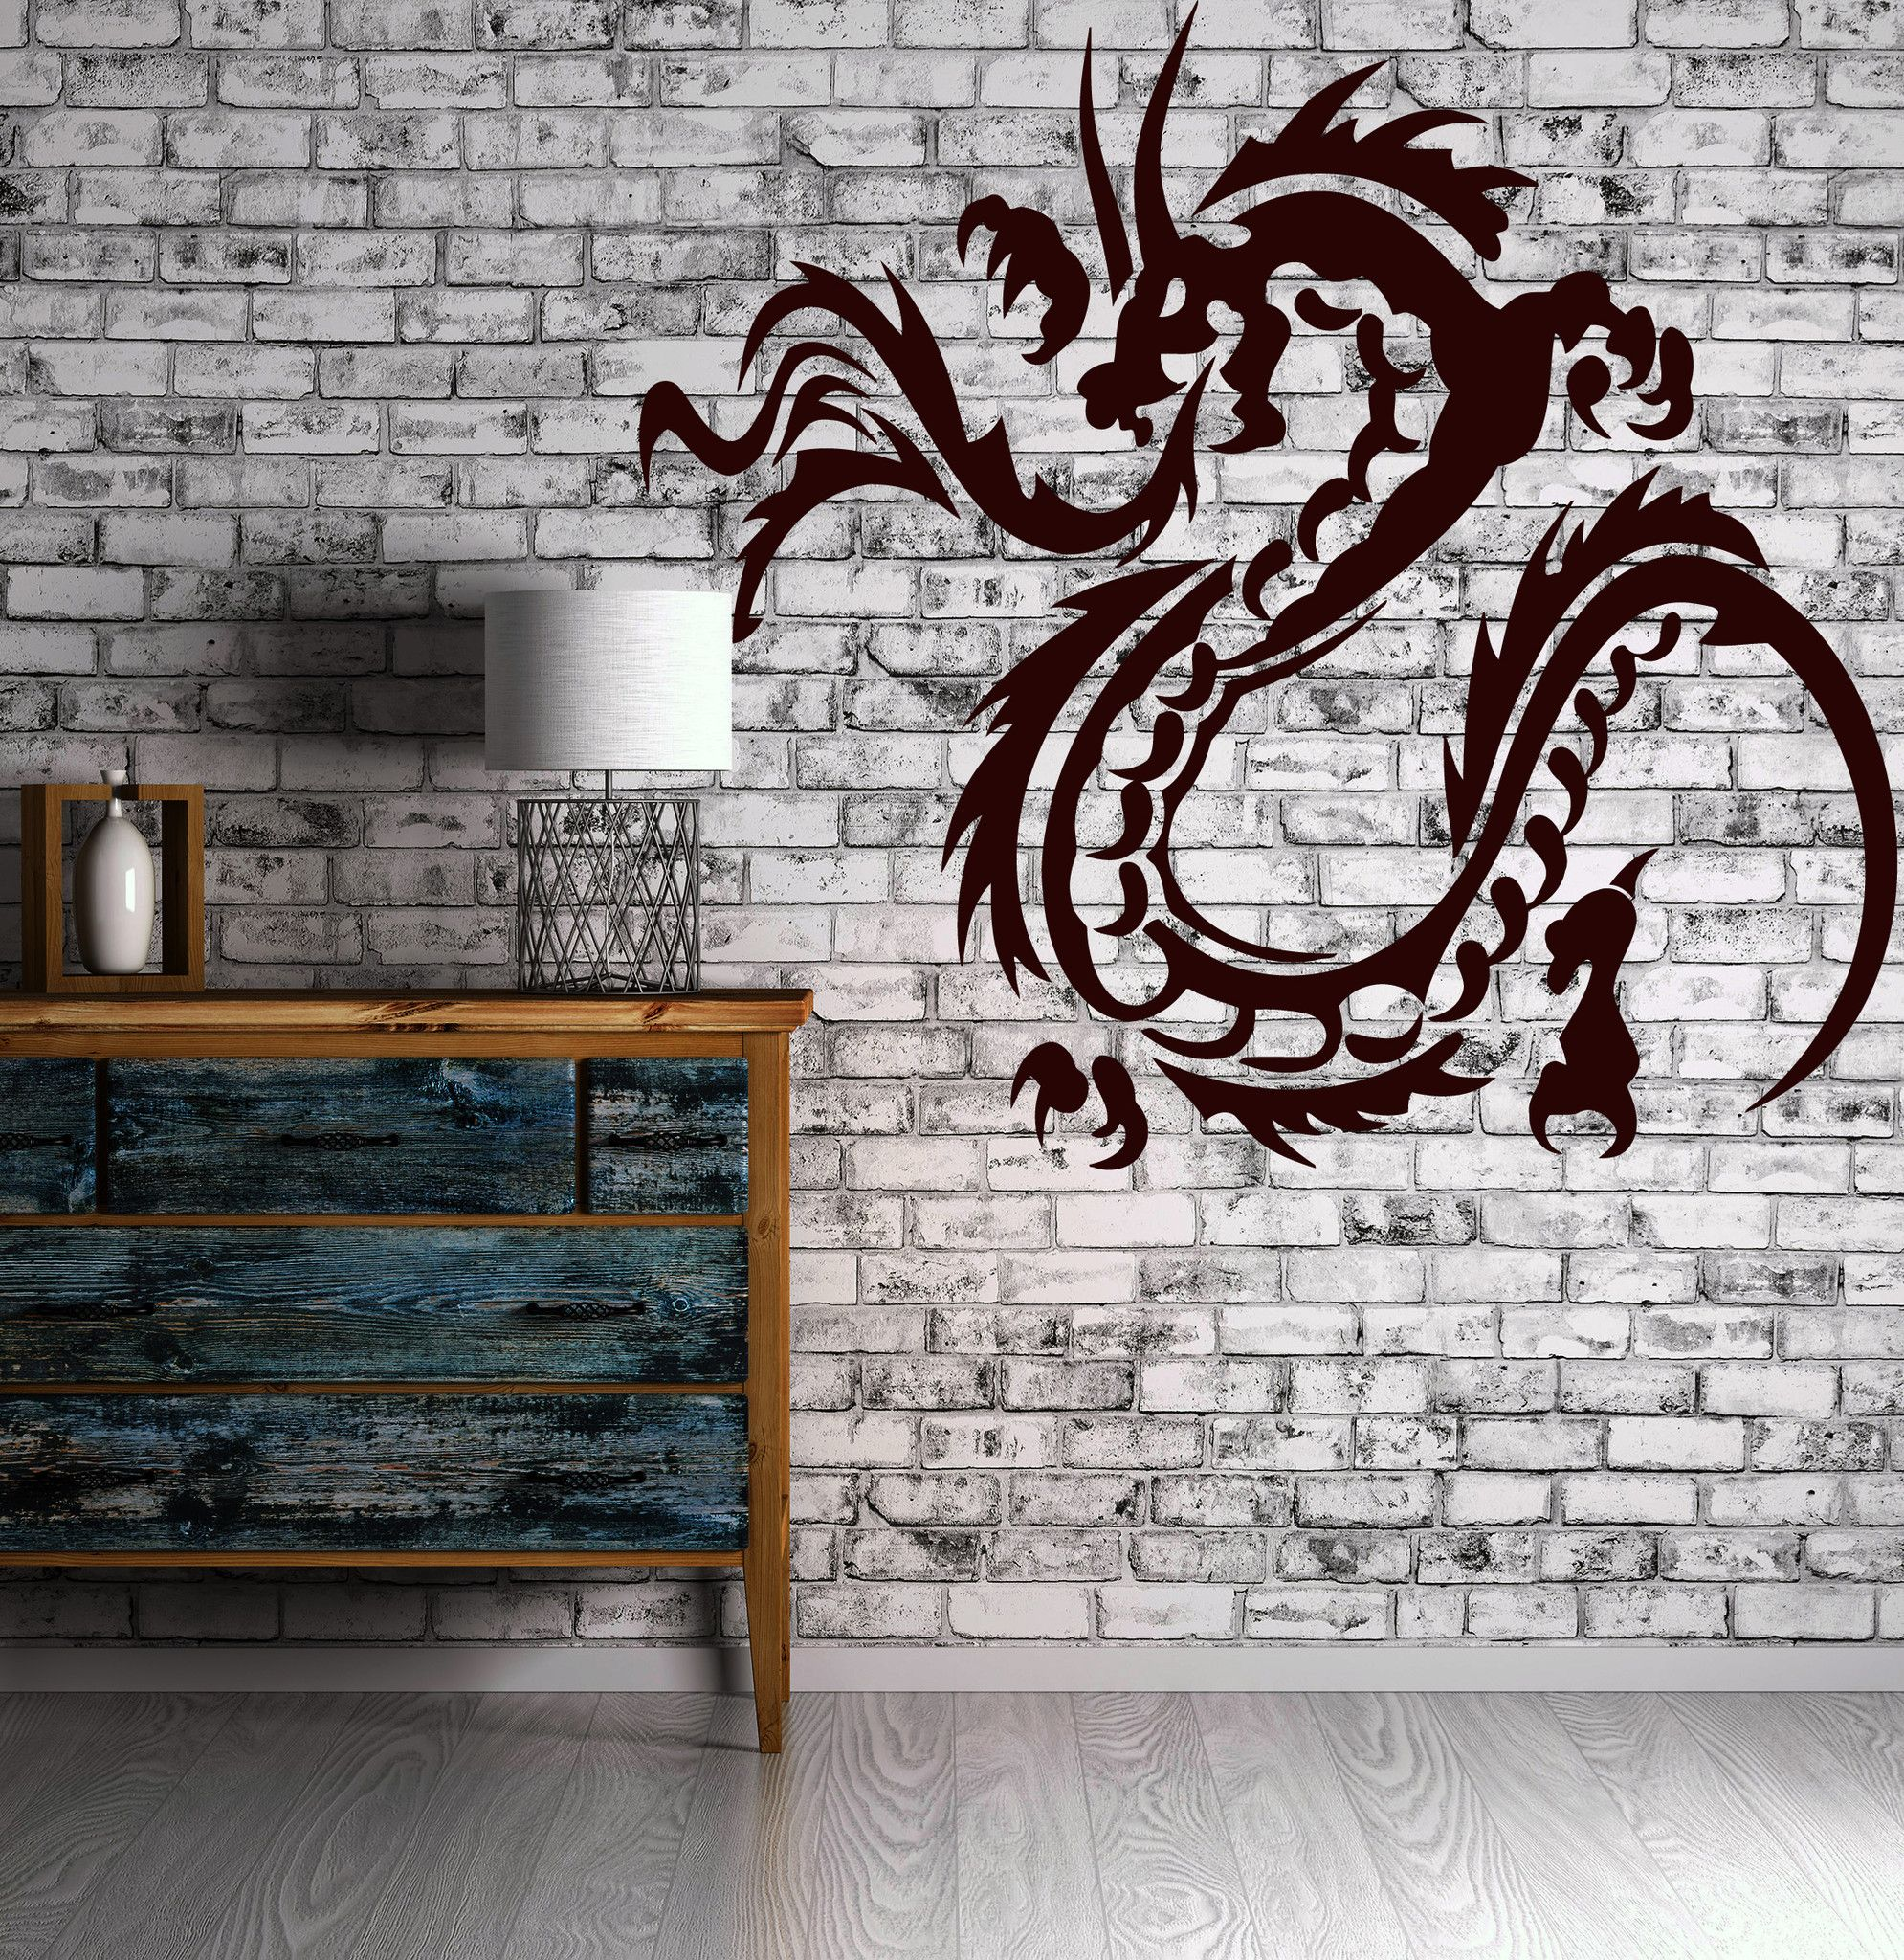 Decor Wall Sticker Vinyl Decal Flame Dragon Claws Horn Tail Body Gyrus (n033)